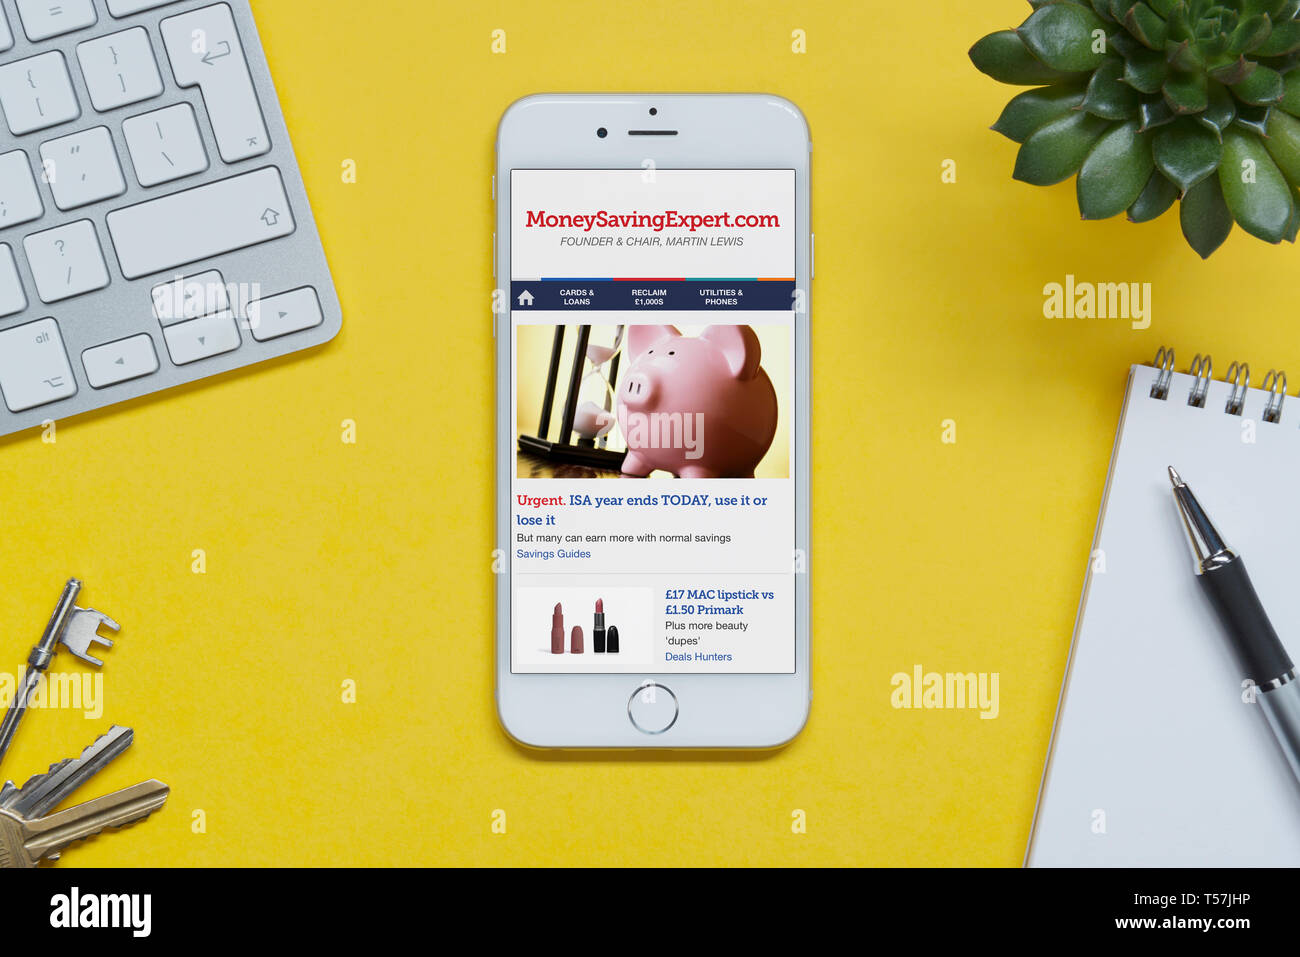 An iPhone showing the Money Saving Expert website rests on a yellow background table with a keyboard, keys, notepad and plant (Editorial use only). - Stock Image